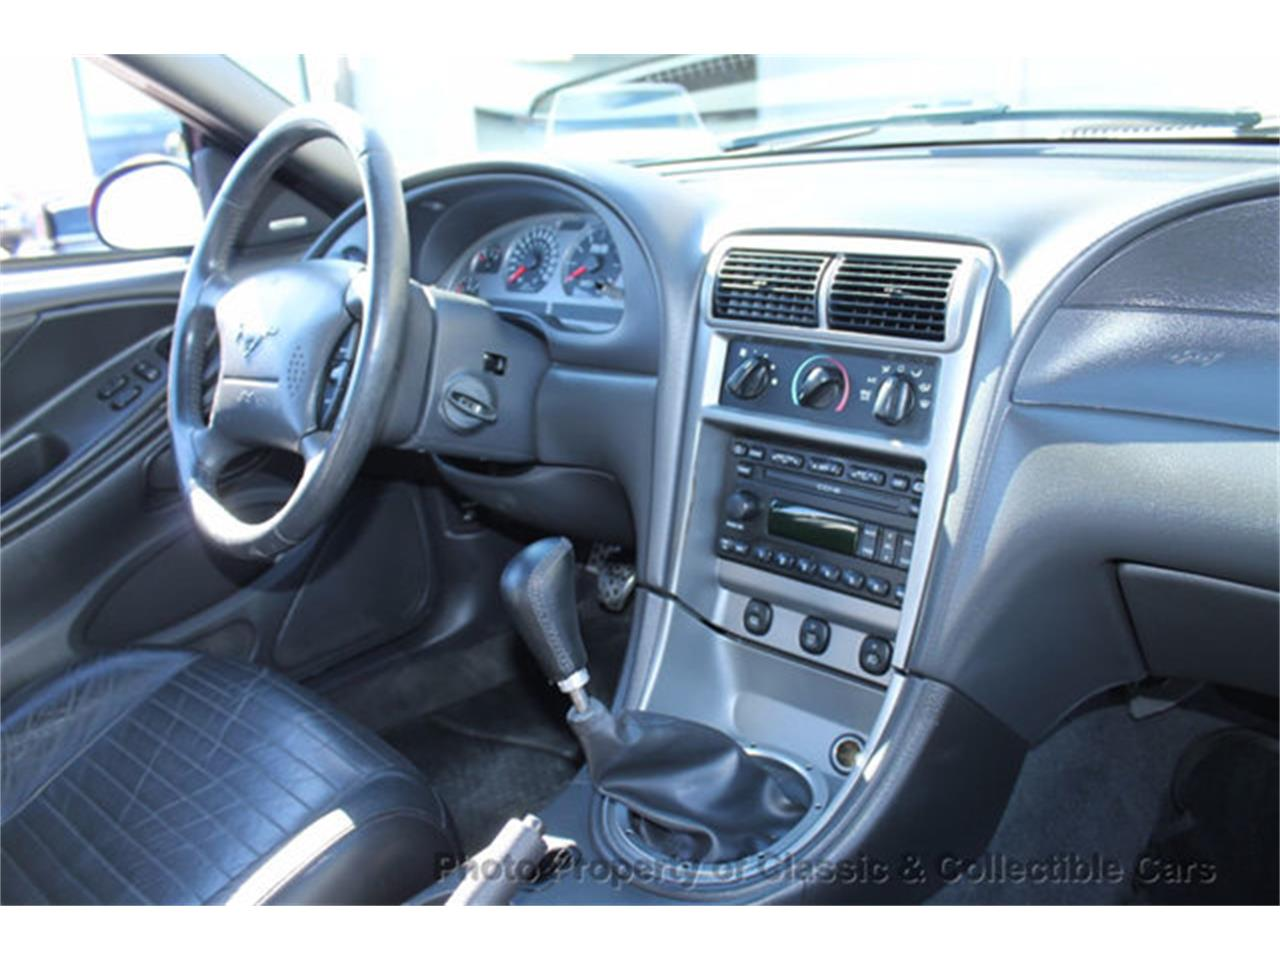 Large Picture of '04 Mustang - $7,995.00 Offered by Classic and Collectible Cars - MAVX